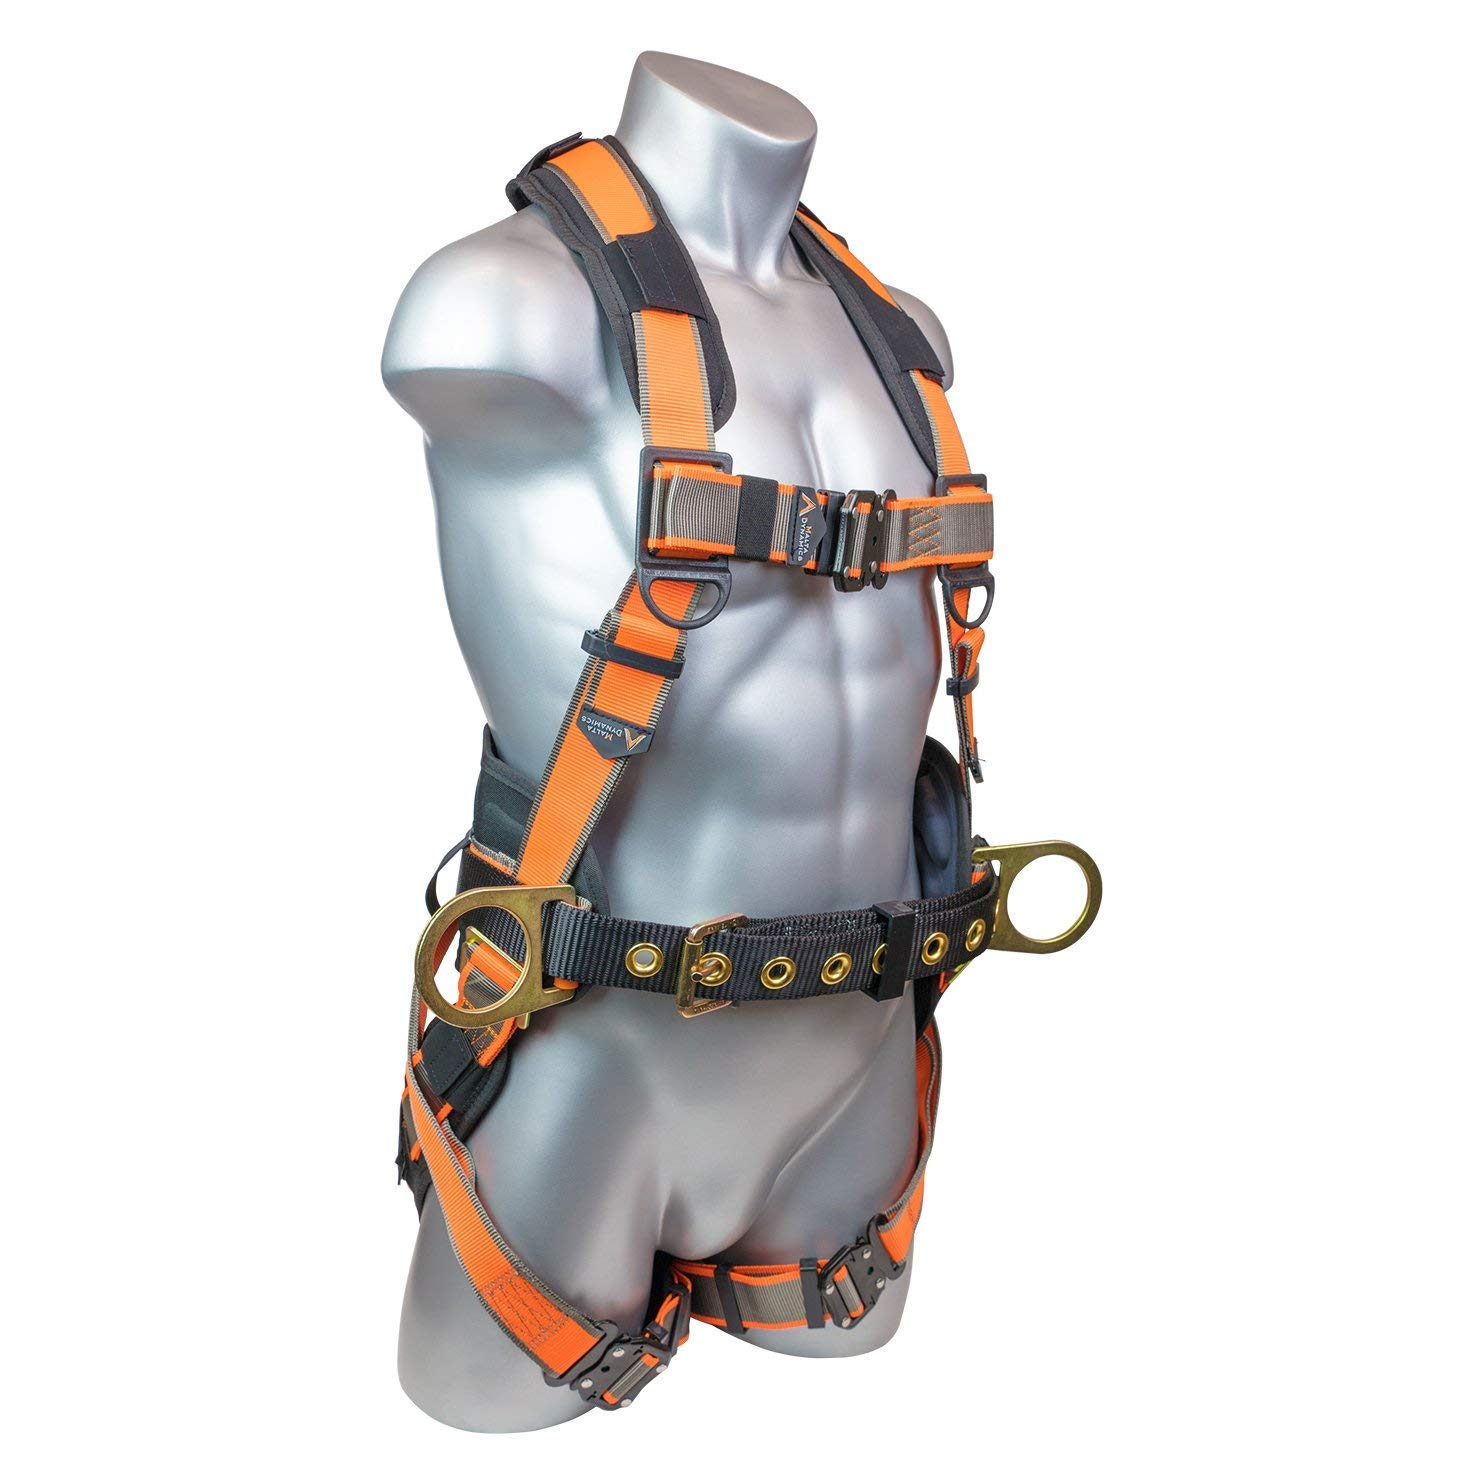 Warthog Comfort MAXX Construction Harness with Removable Belt, Side D-Rings and Additional Thick Padding (S-M-L), OSHA/ANSI Compliant by Malta Dynamics